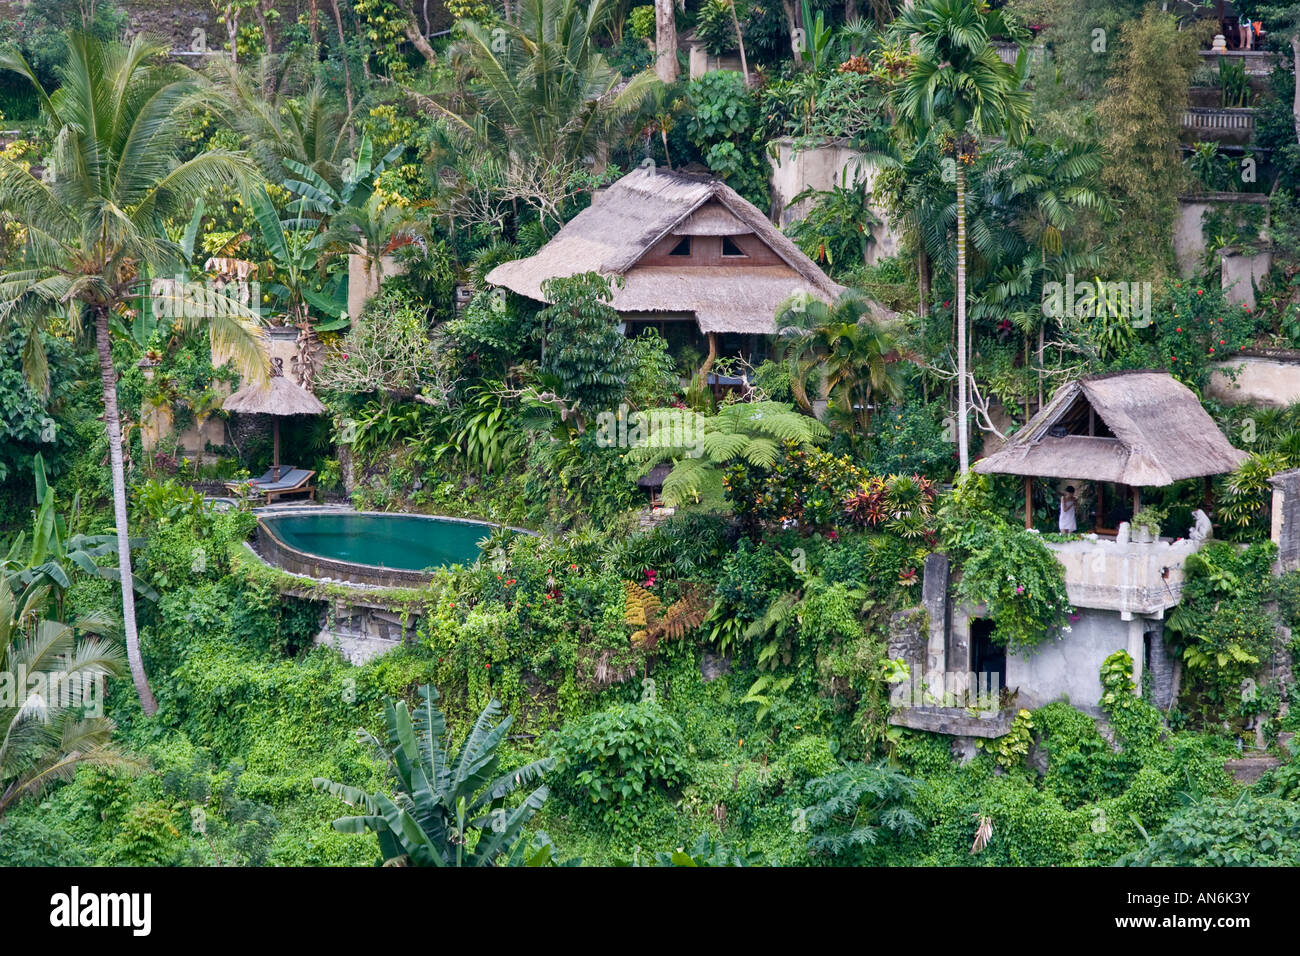 Luxury hotel set in the jungle ubud bali indonesia stock for Top hotels in ubud bali